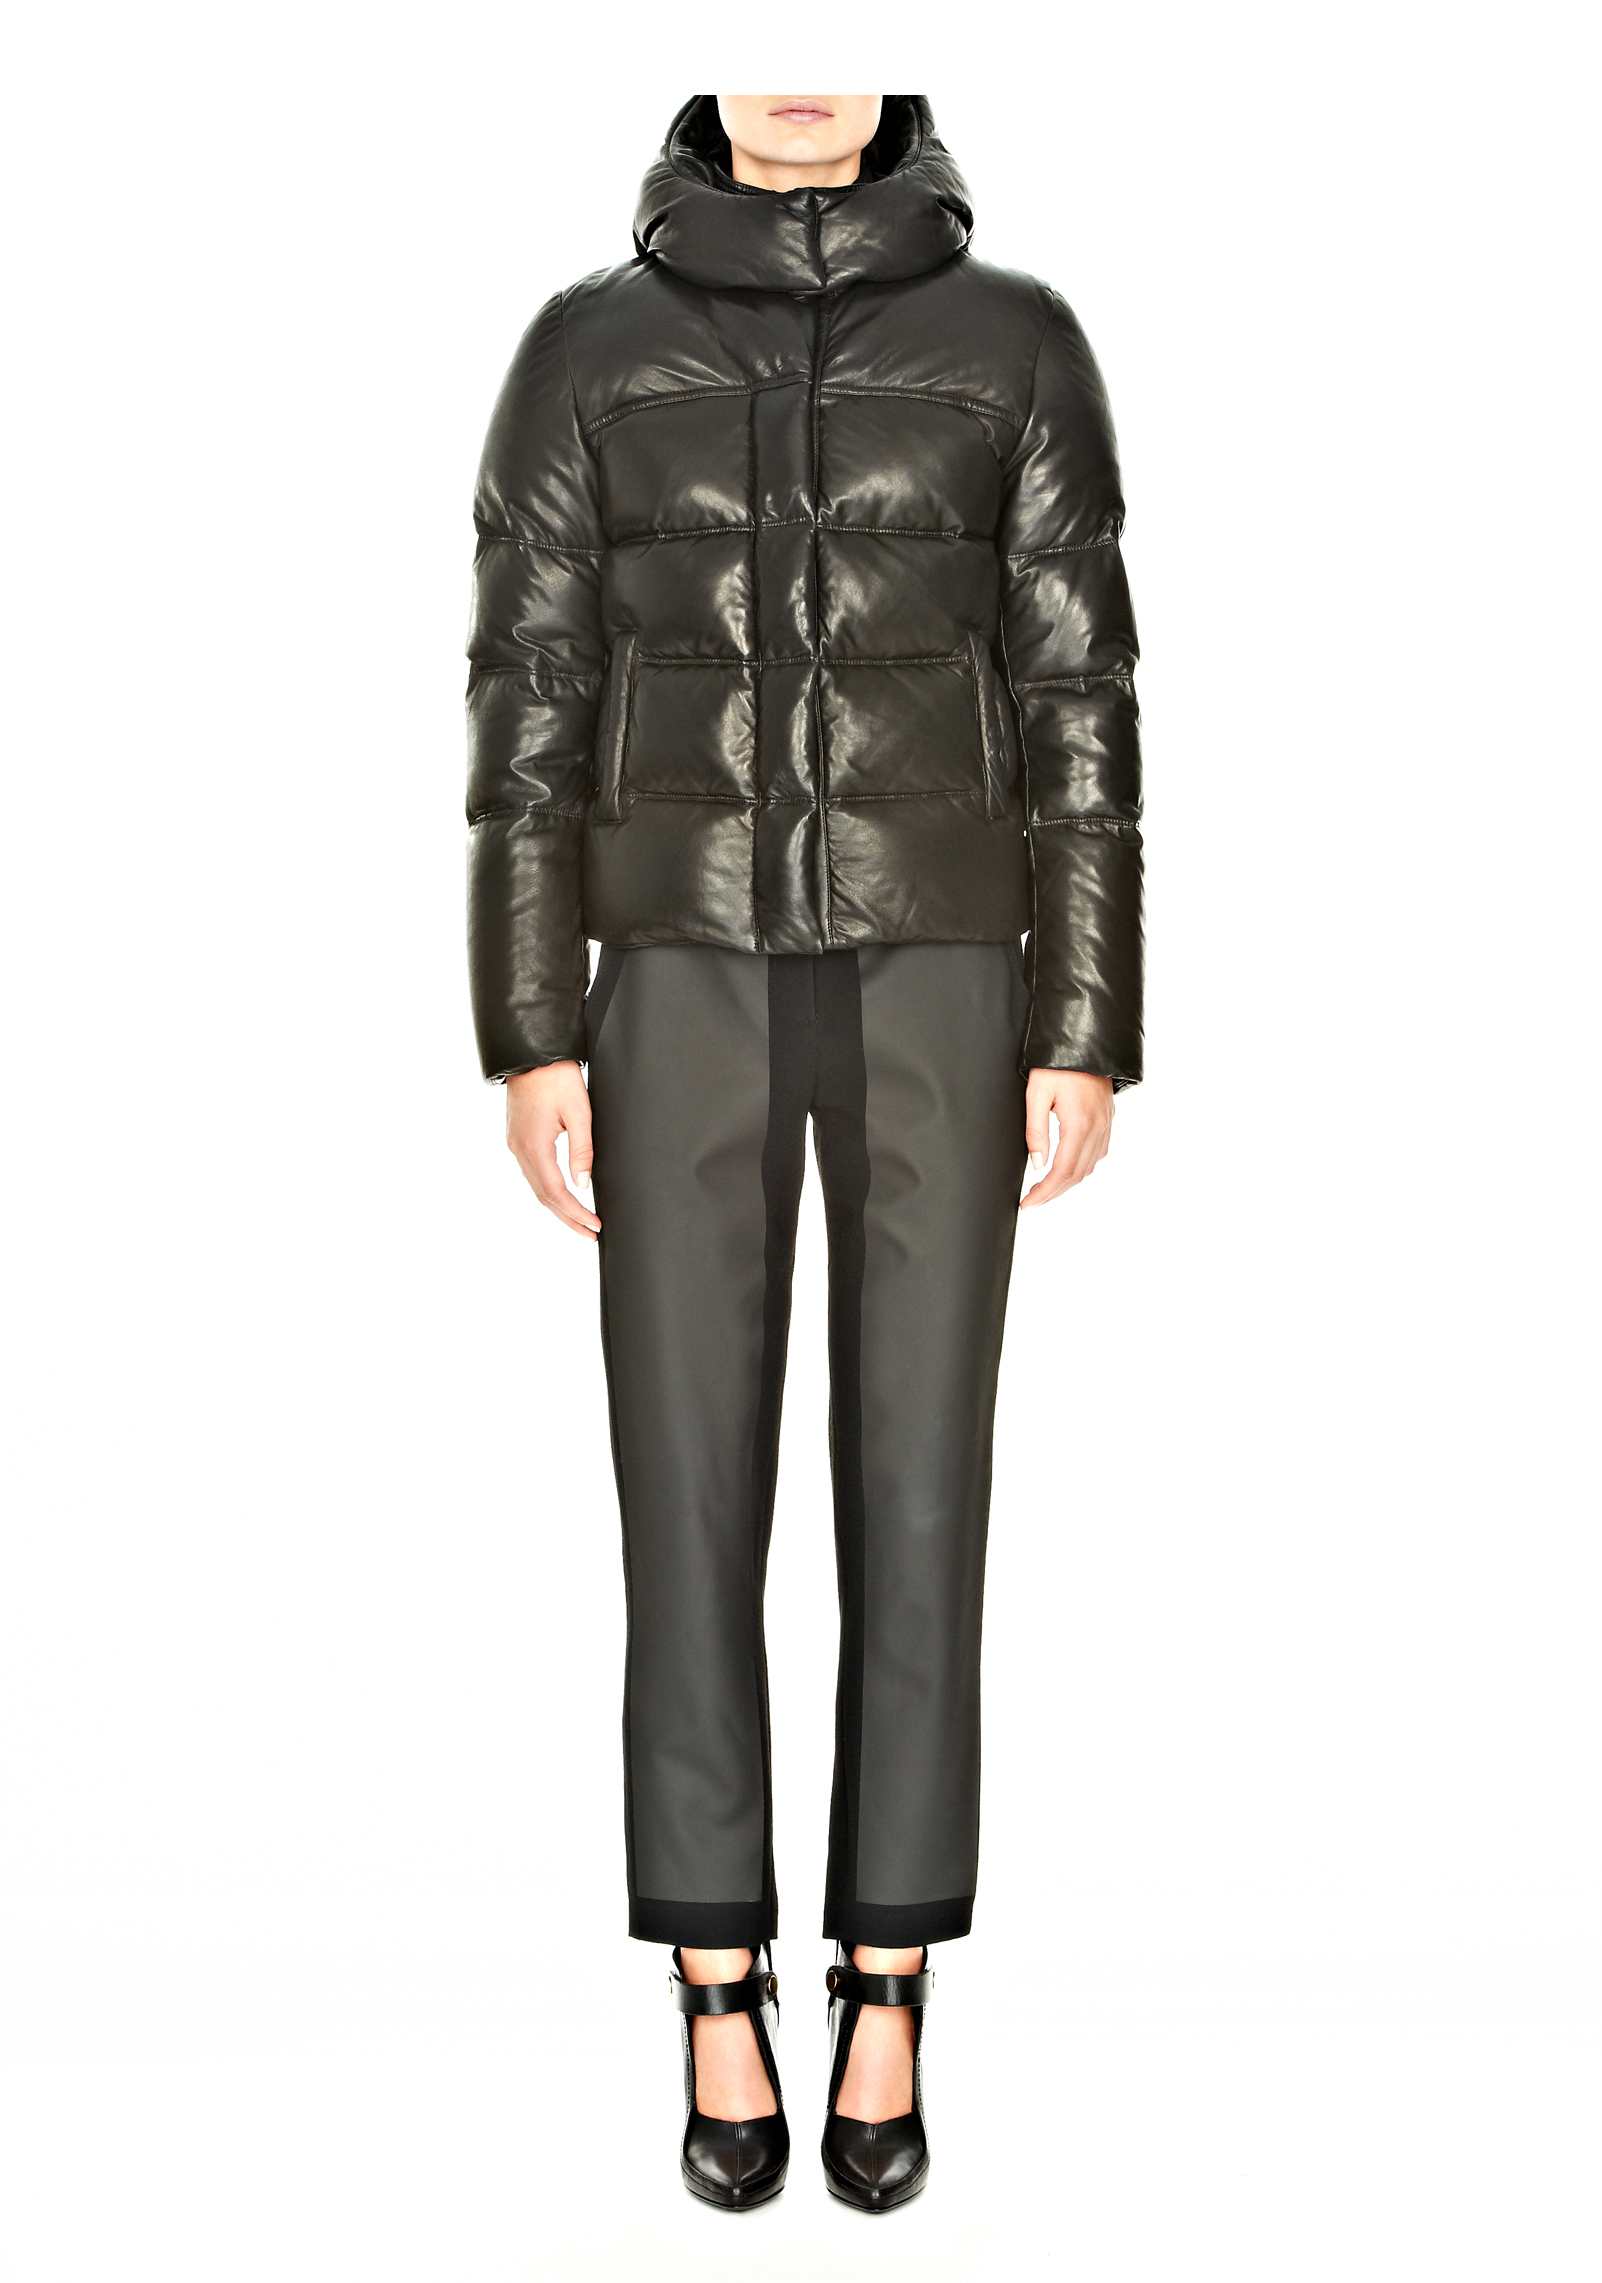 a1bba653a Alexander Wang Black Leather Puffer with Removable Hood